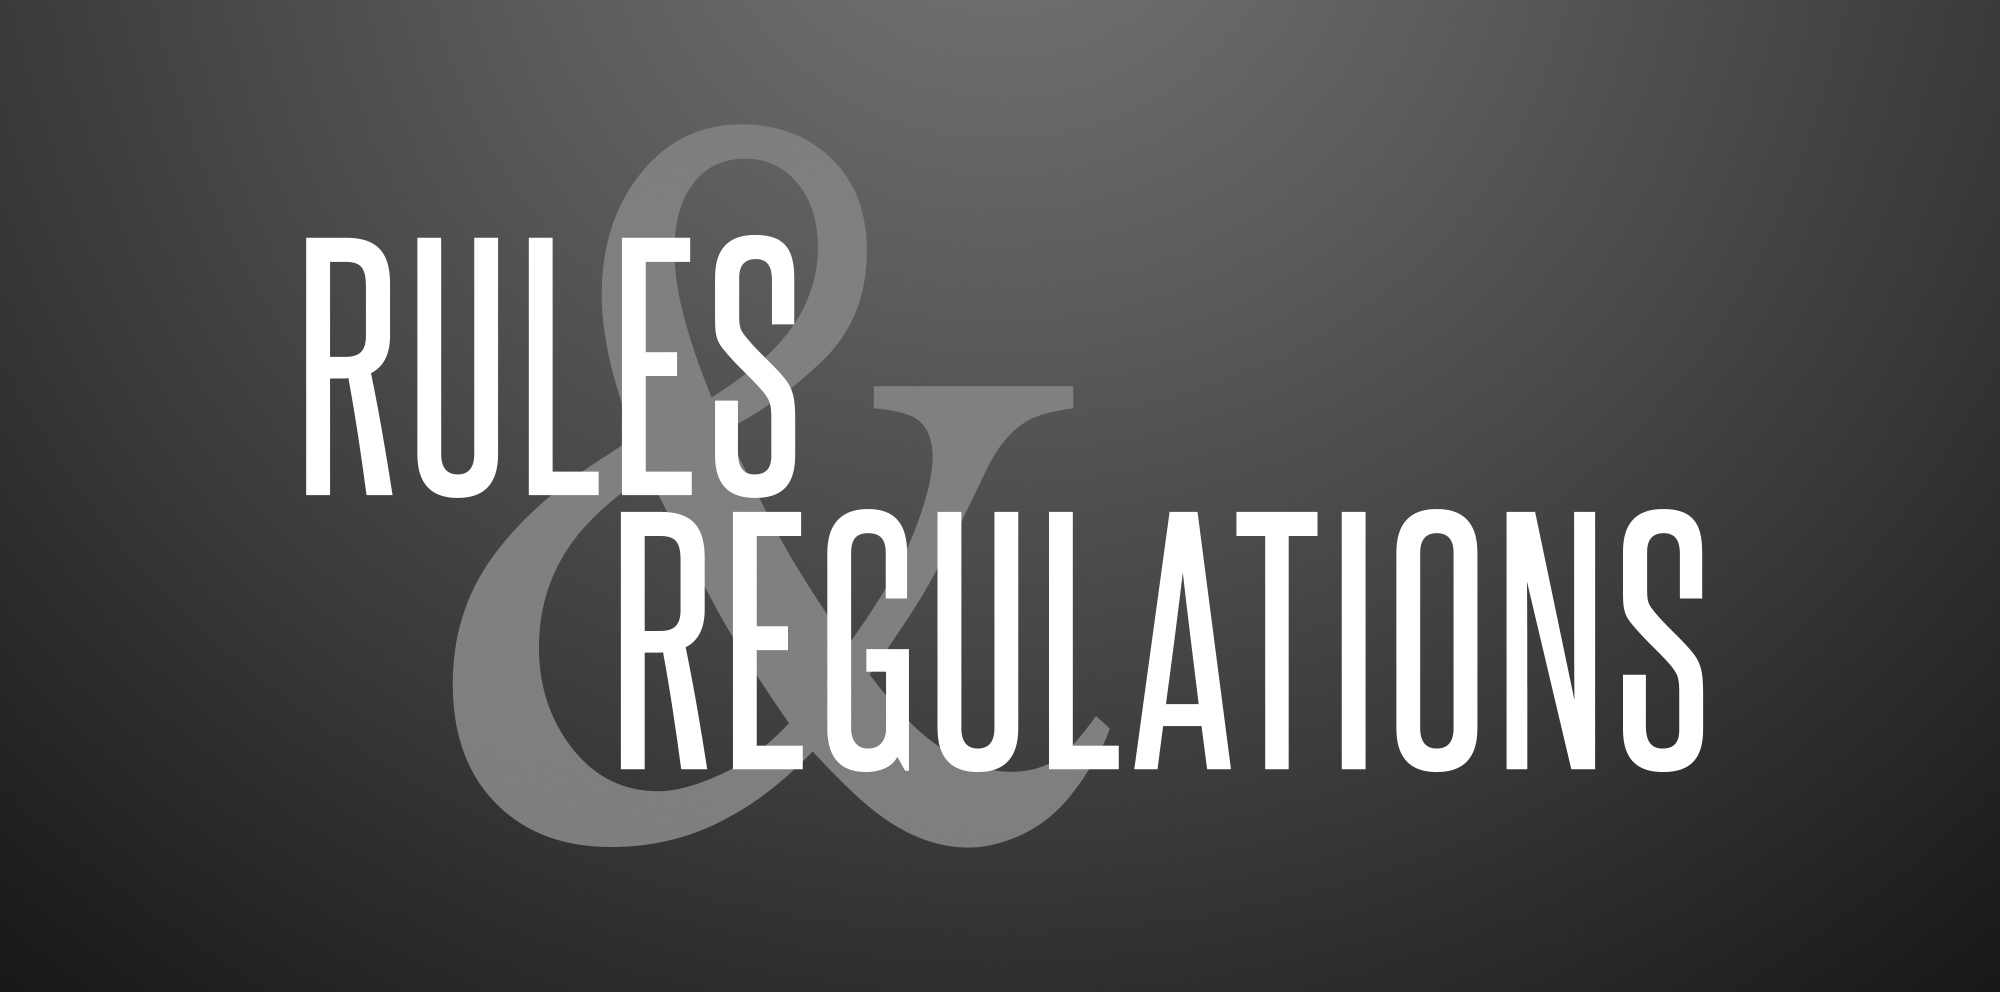 policies and regulations On this page: notice and comment rulemaking review of proposed and final rules related resources as required by law, the food and drug administration publishes regulations in the federal register, the federal government's official publication for notifying the public of many kinds of agency.